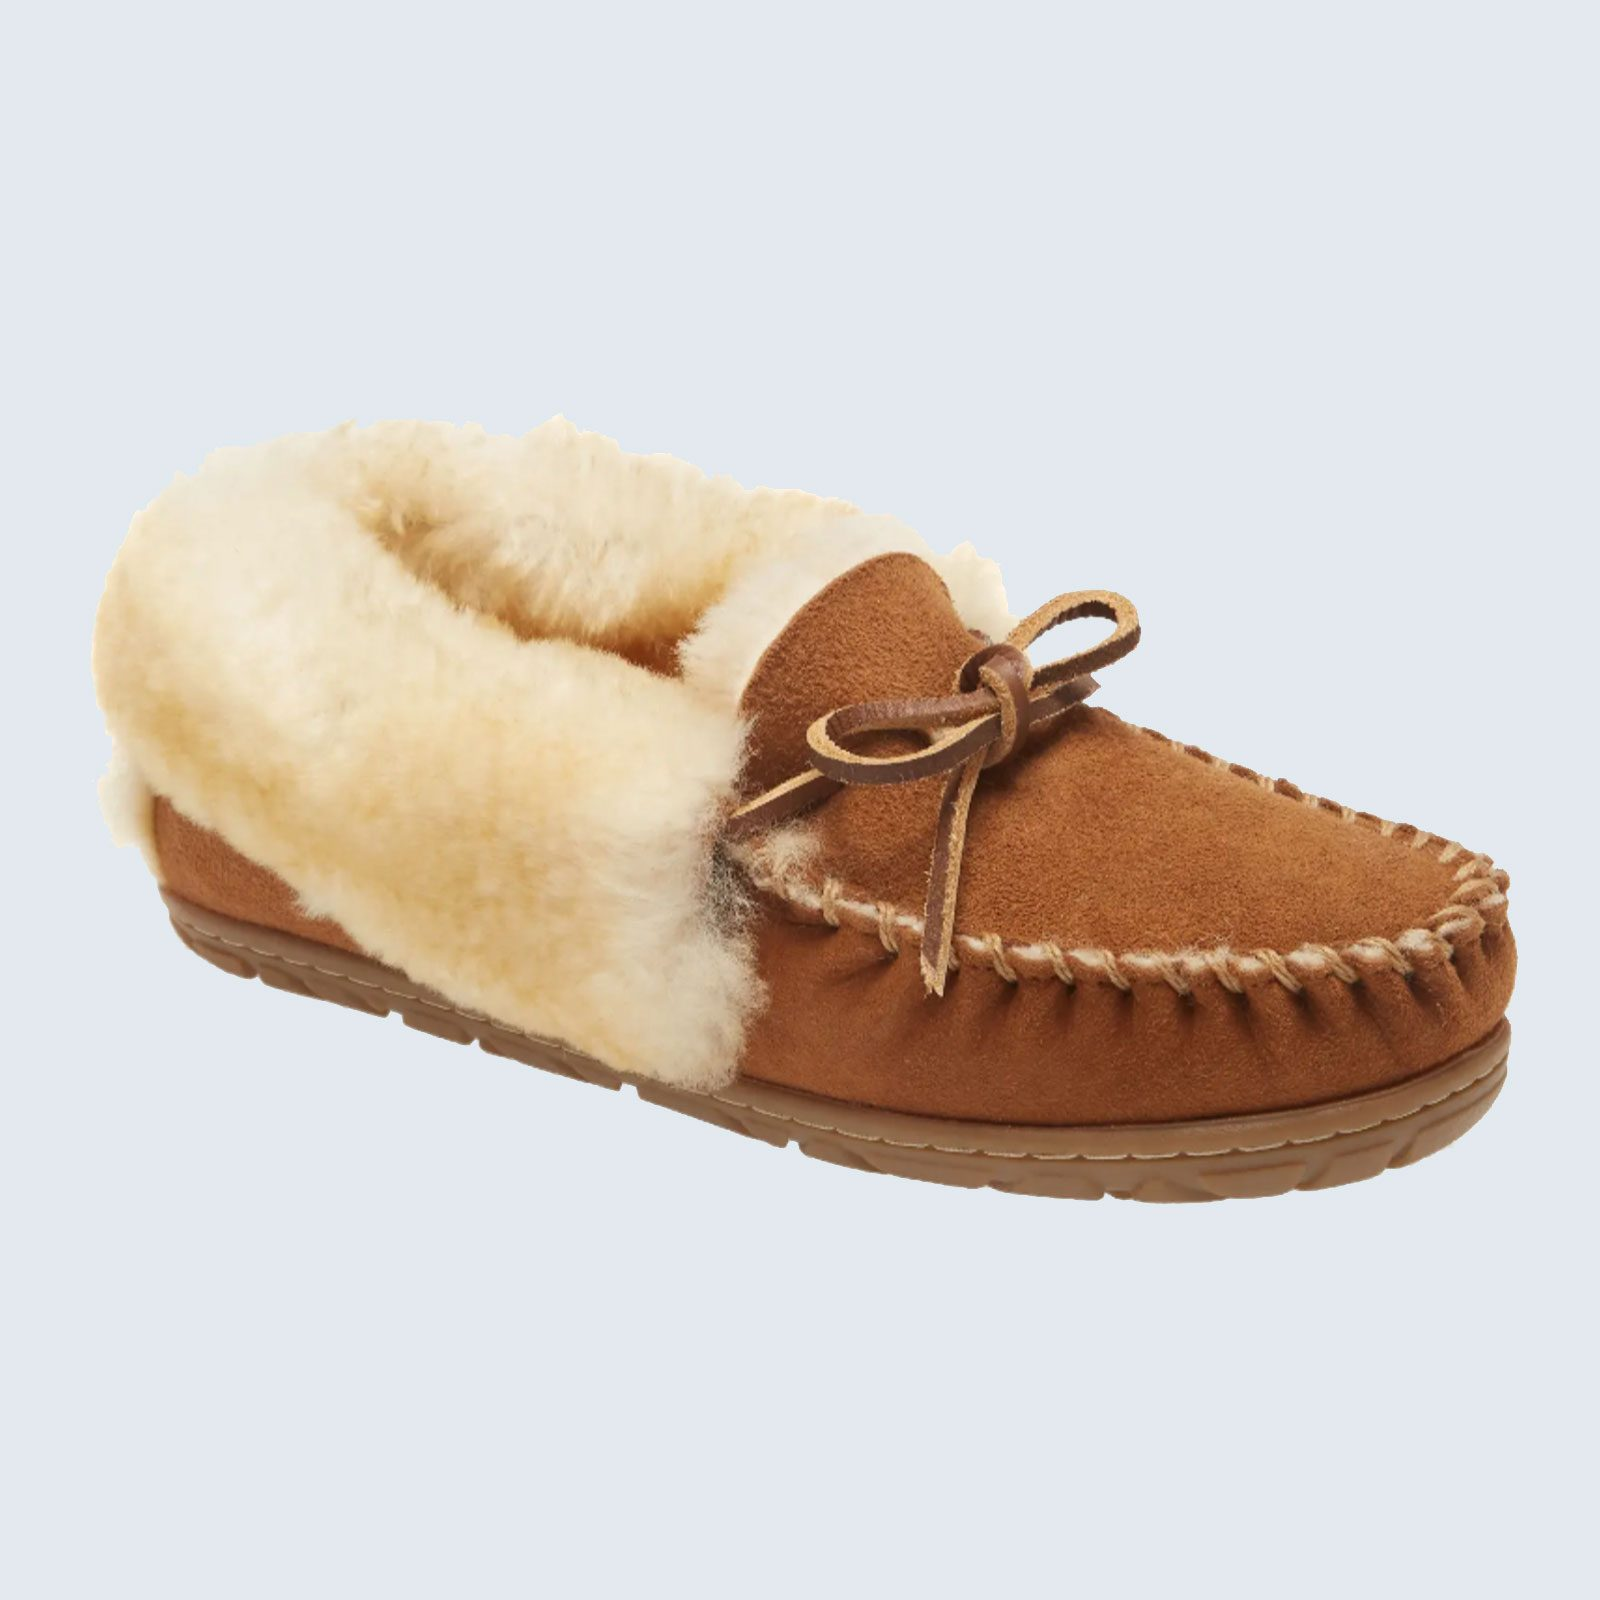 Best shearling slippers: L.L. Bean Wicked Good Genuine Shearling Moccasin Slipper